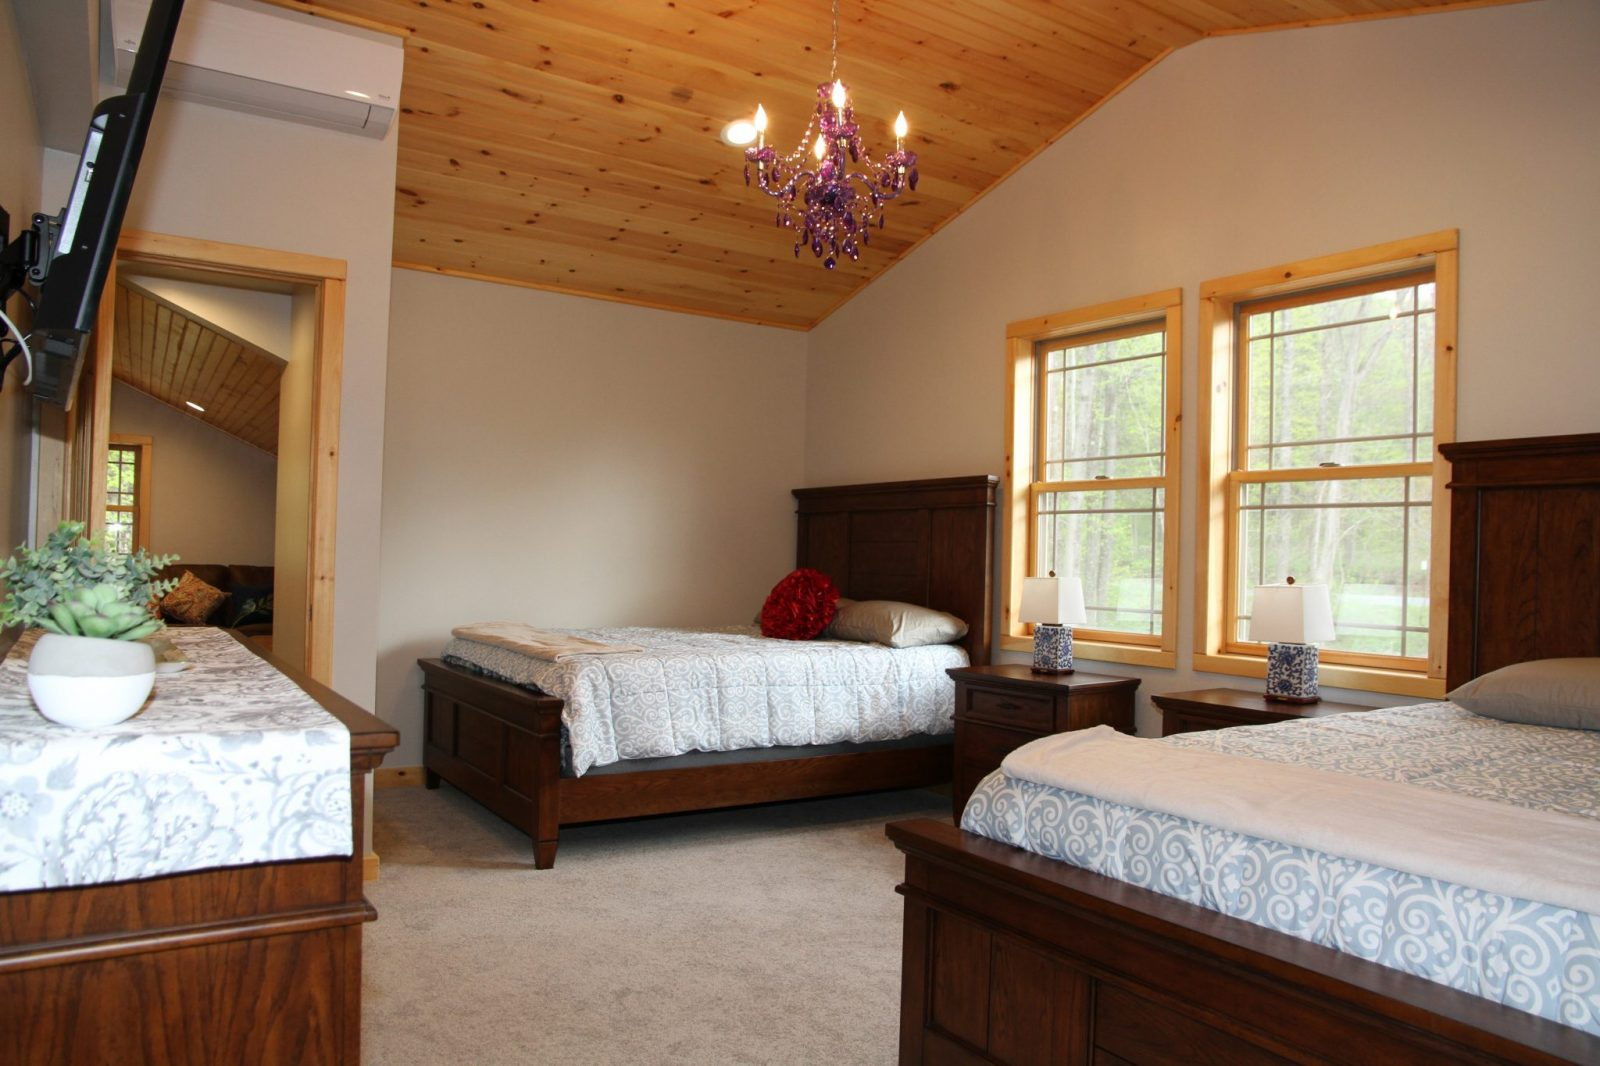 cleverdale chatrooms Official site of holiday inn resort lake george - water view read guest reviews and book your stay with our best price guarantee kids stay and eat free at holiday inn resorts.